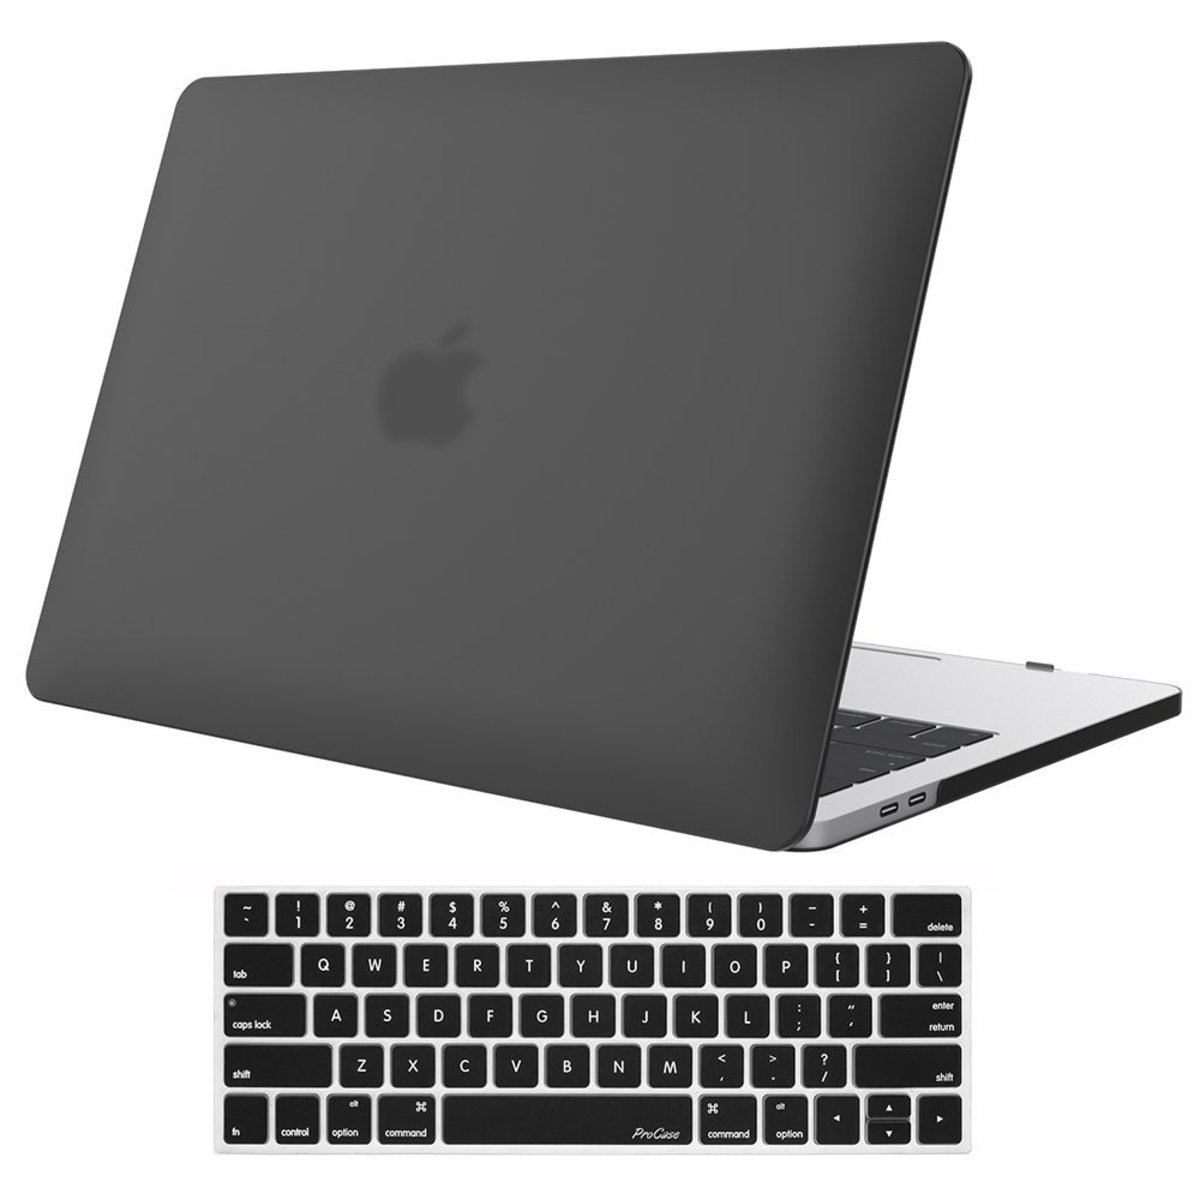 The ProCase Hard Shell. An affordable case that looks good and does the job, in my experience. I use one on my newest MacBook, it was easy to install and I like the keyboard cover, which really does help stop getting crumbs under the keys.